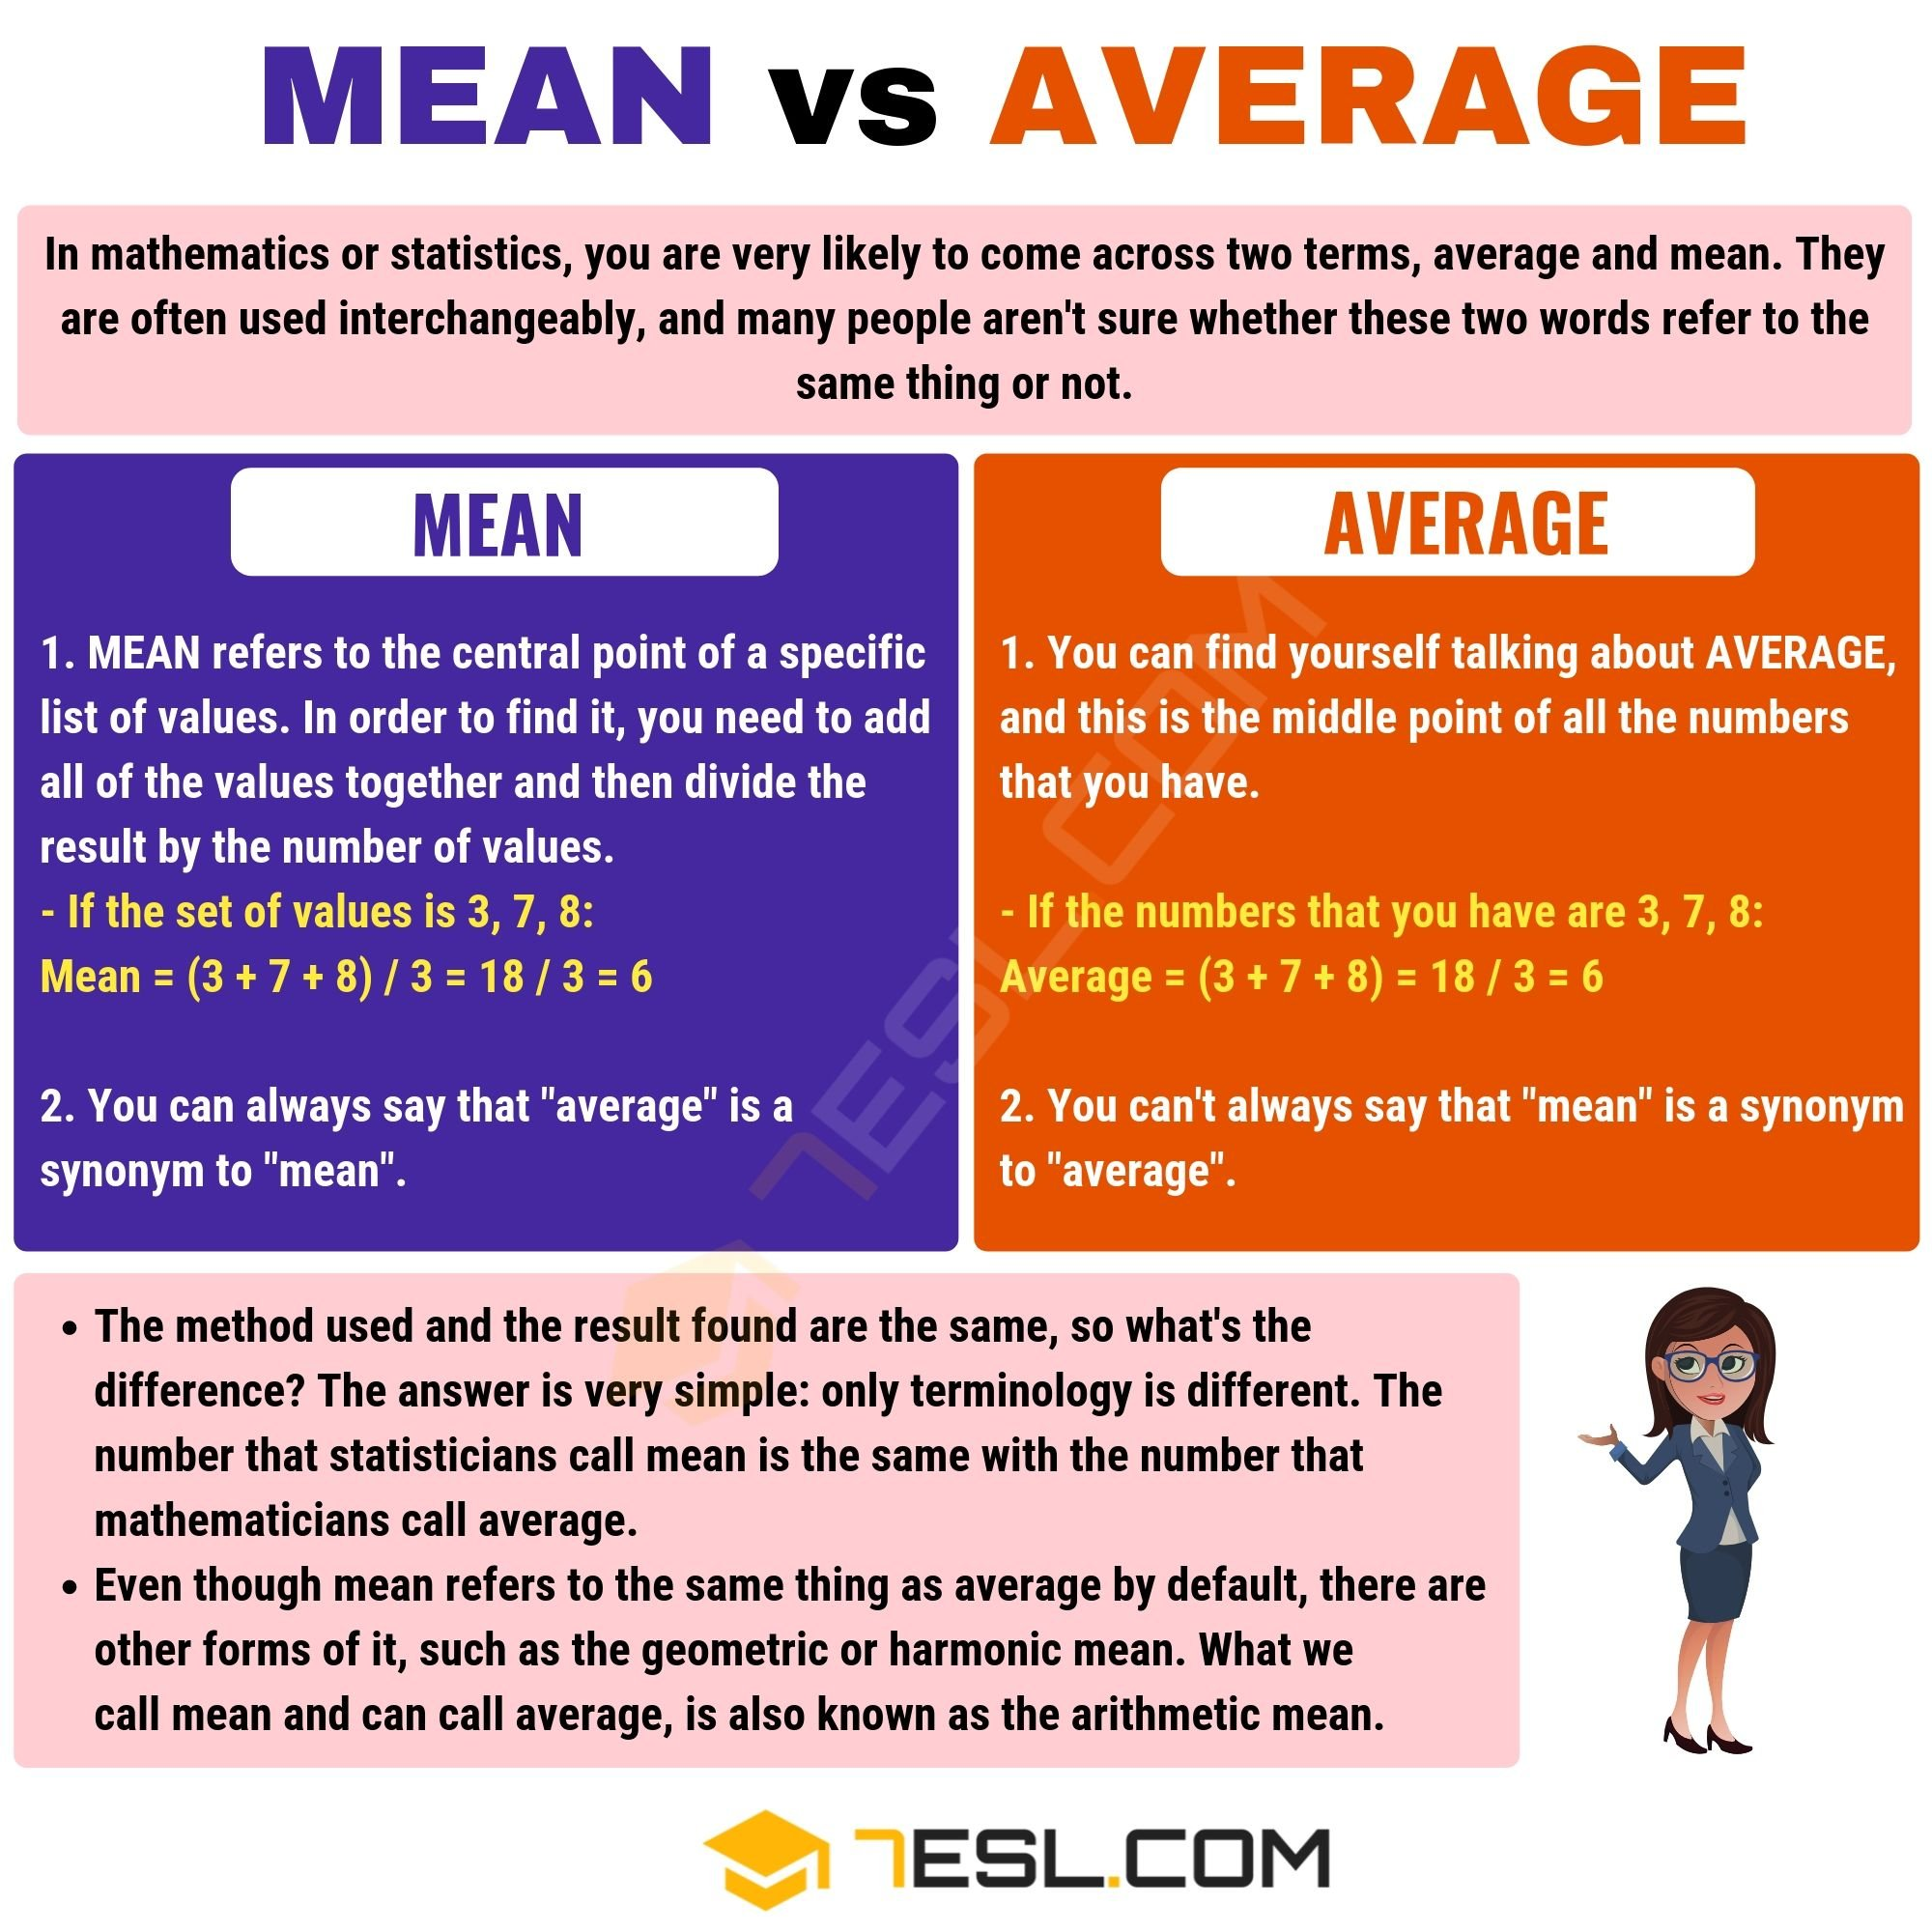 Mean vs Average